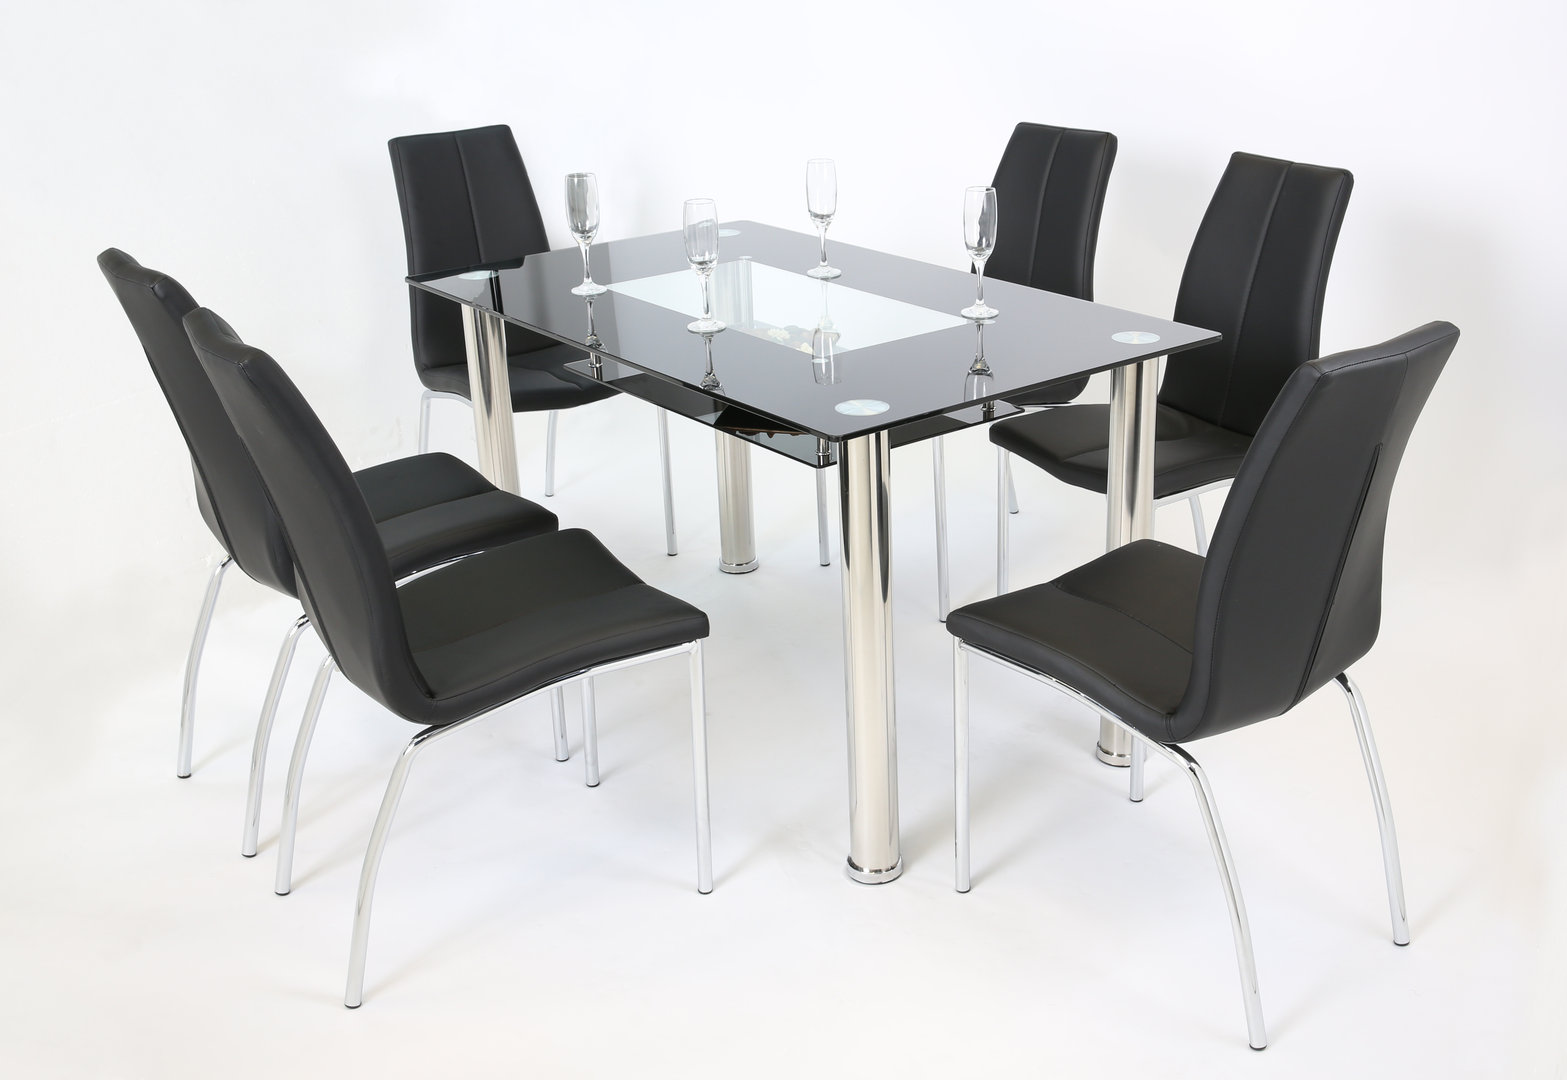 Black and Clear Glass Dining Table and 6 Chairs Homegenies : Blackglassdiningtableand6chairs from www.homegenies.co.uk size 1567 x 1080 jpeg 121kB